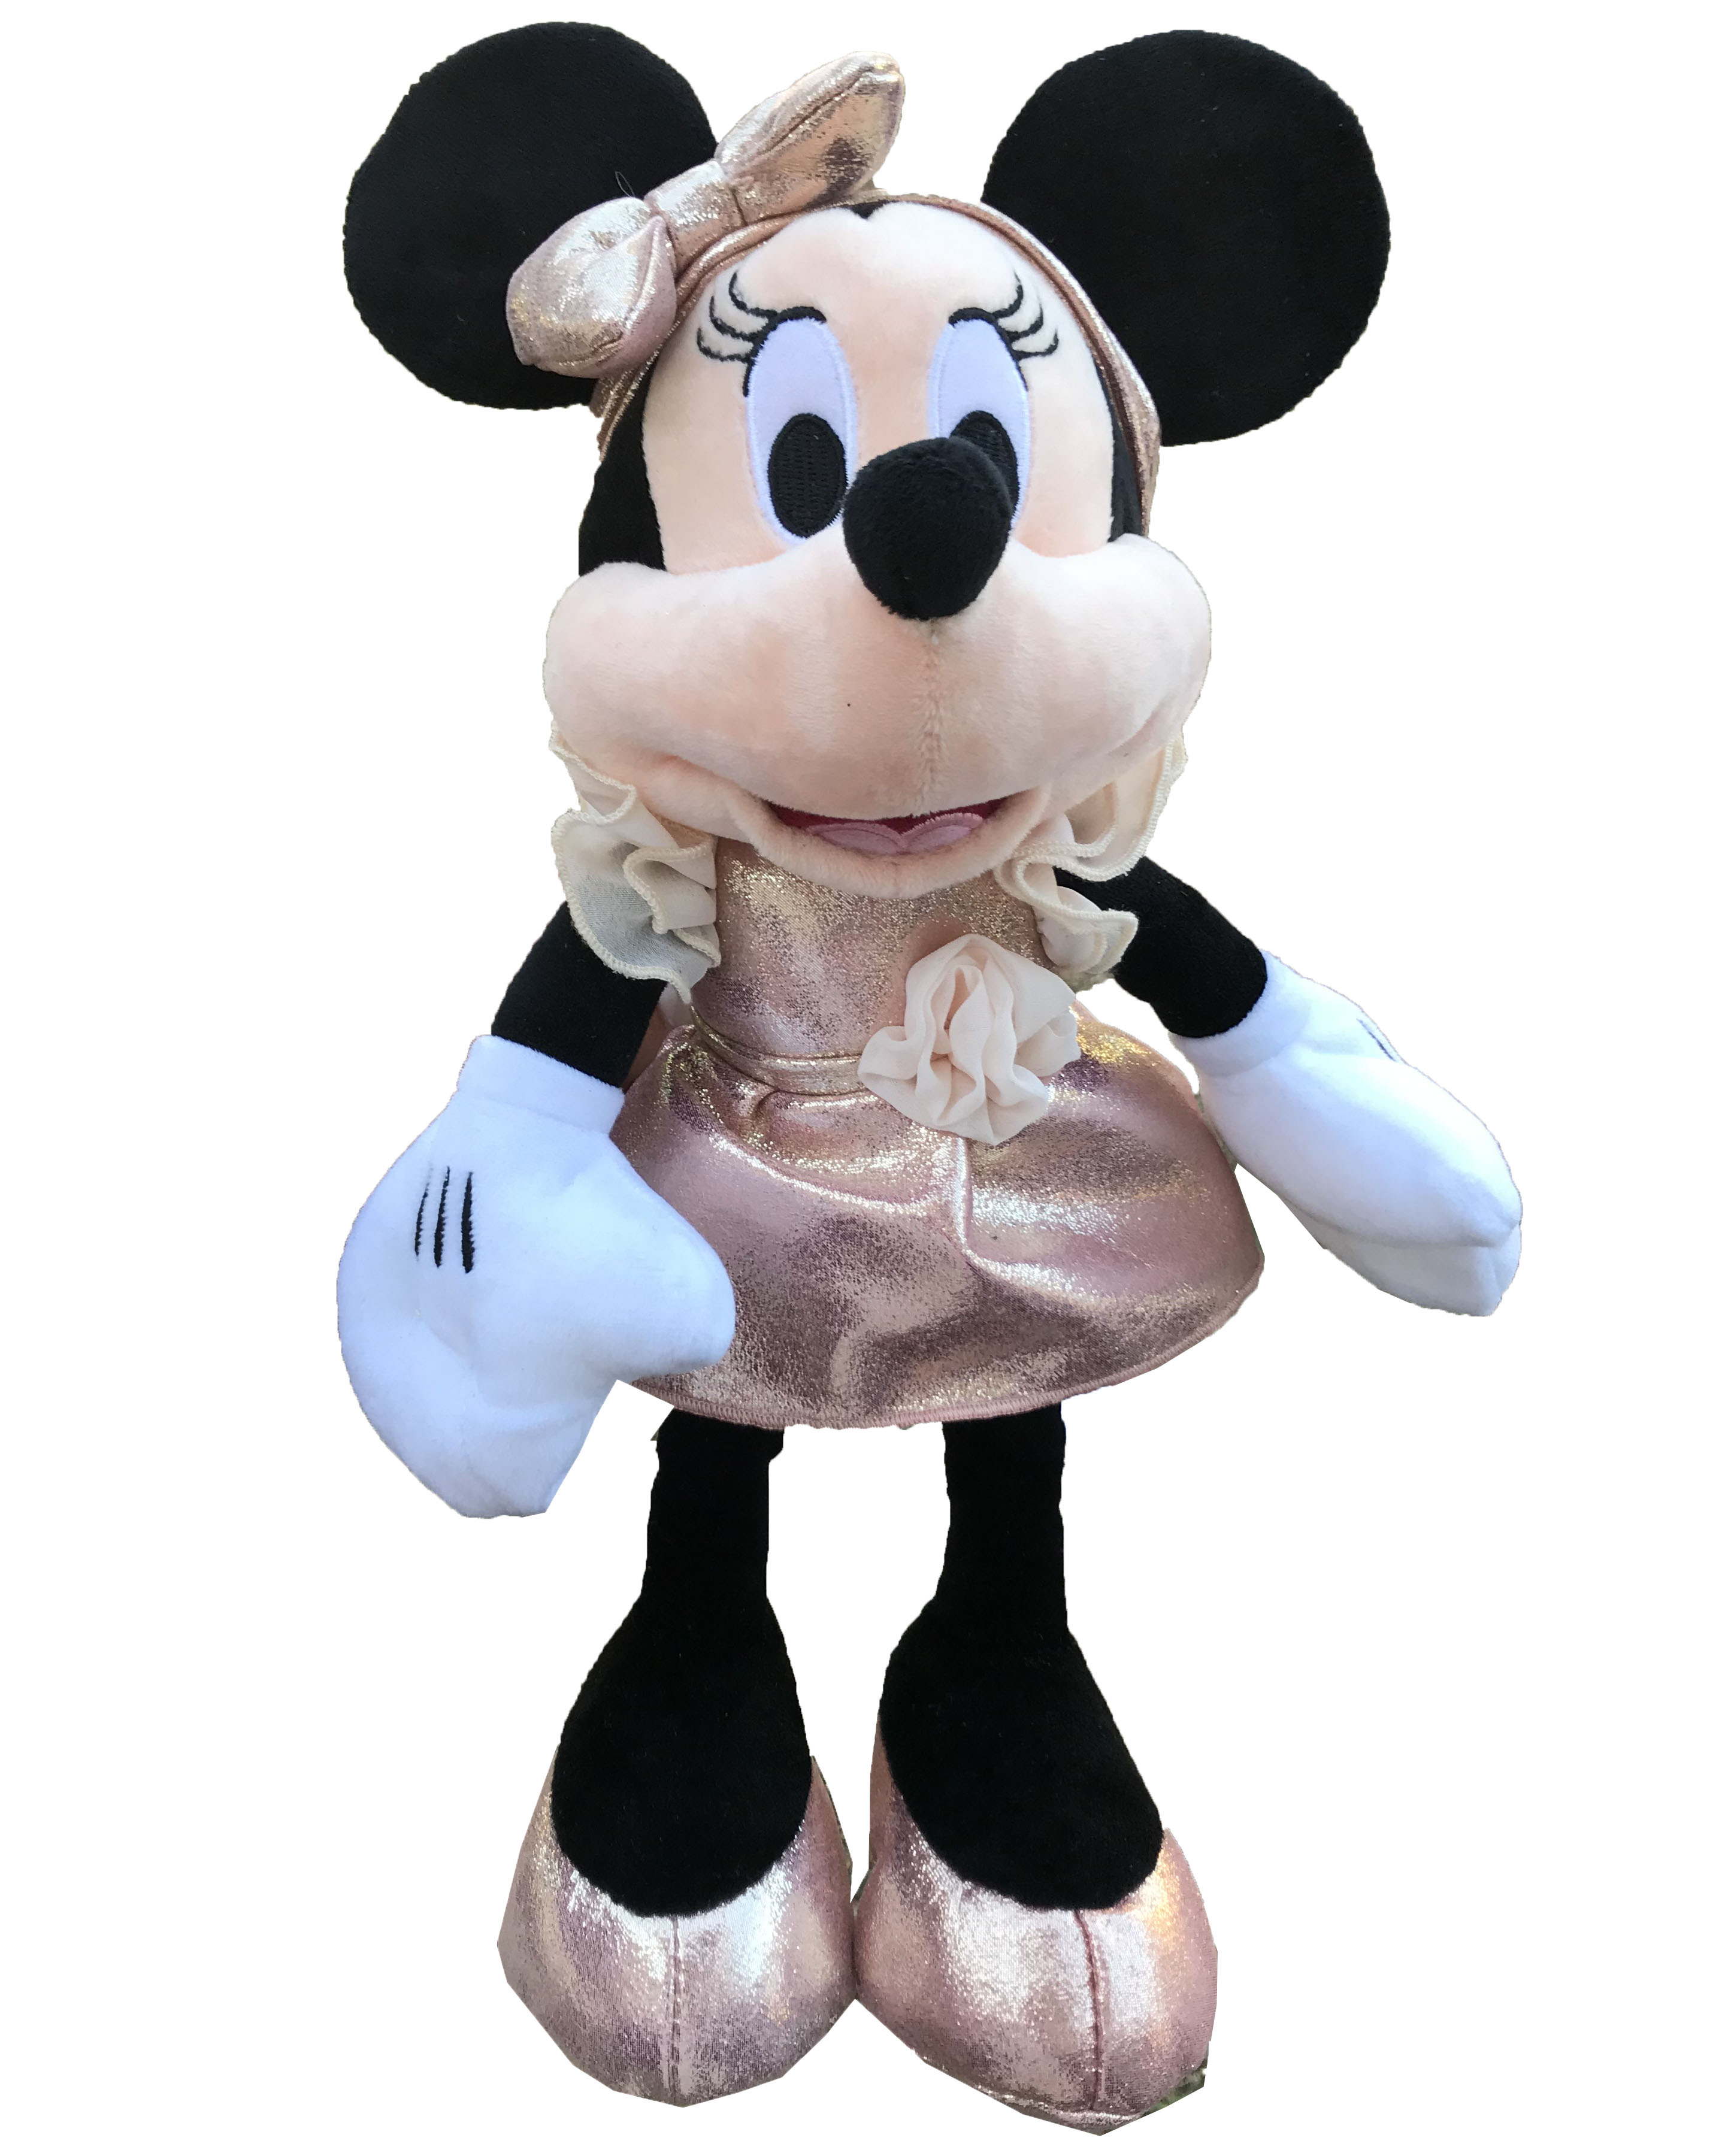 Disney Plush - Minnie Mouse - Rose Gold - 11